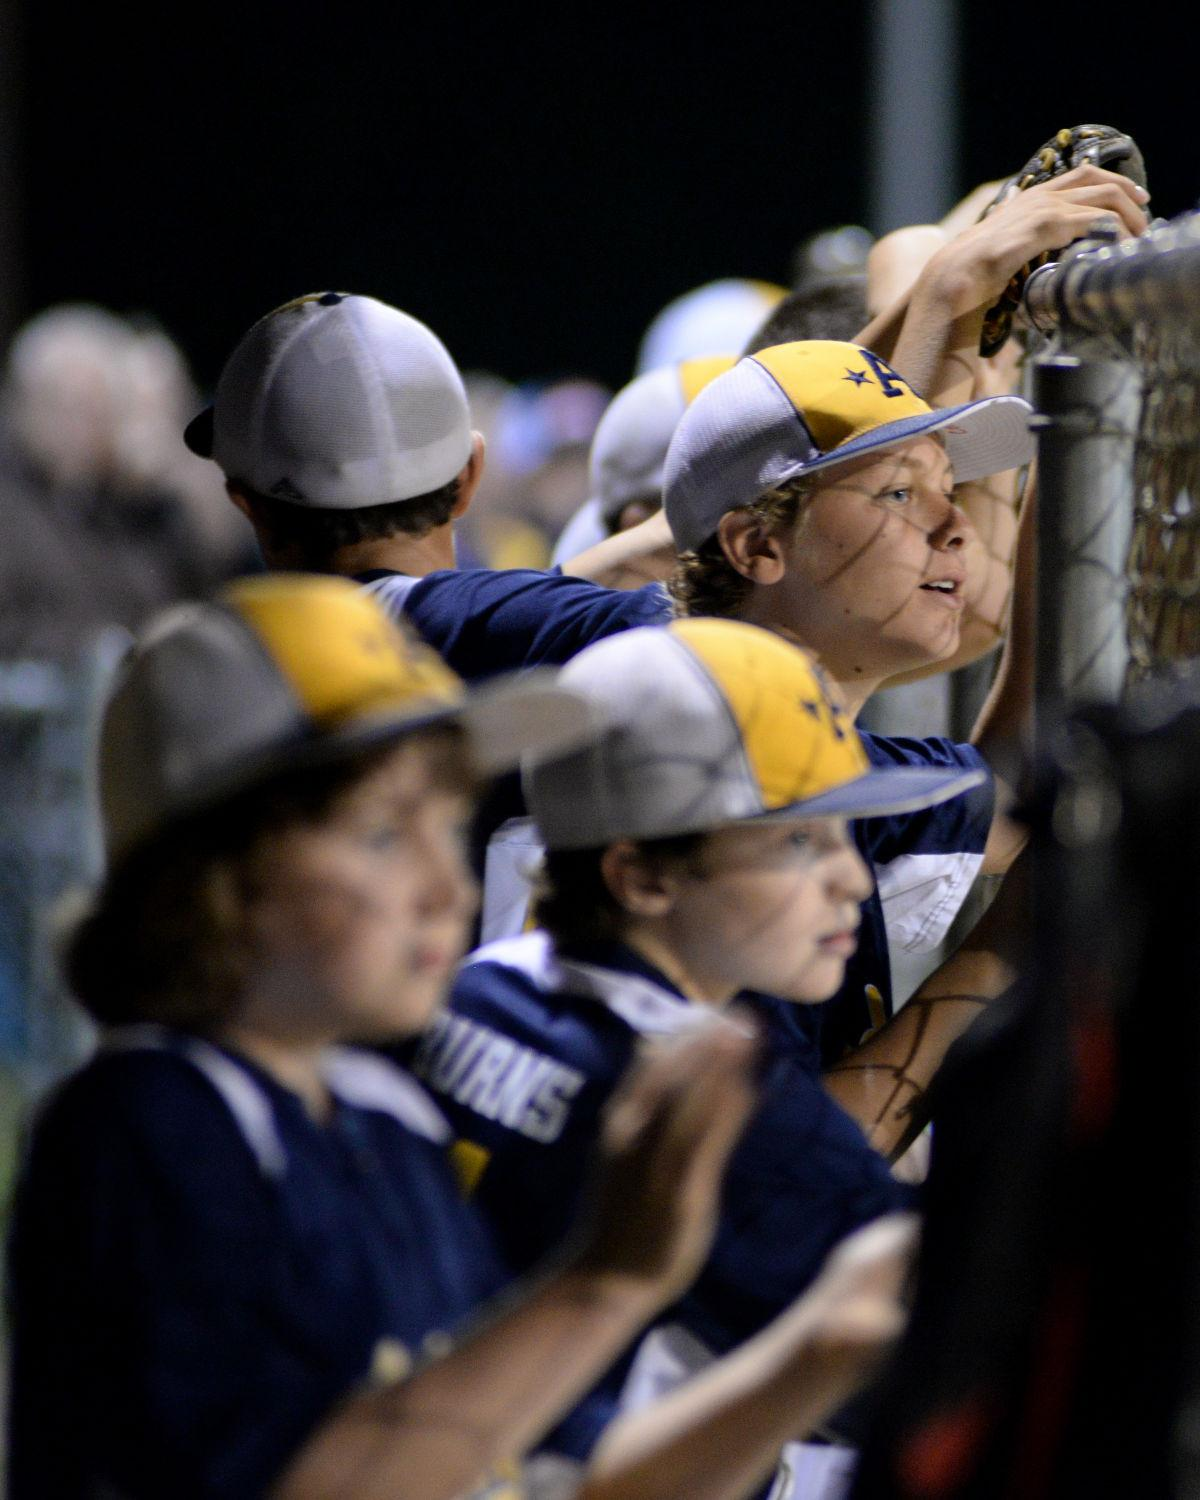 The Andover National's bench watches a teammate at bat in the bottom of the fourth inning of Thursday's game against Andover American. National won 8-2.